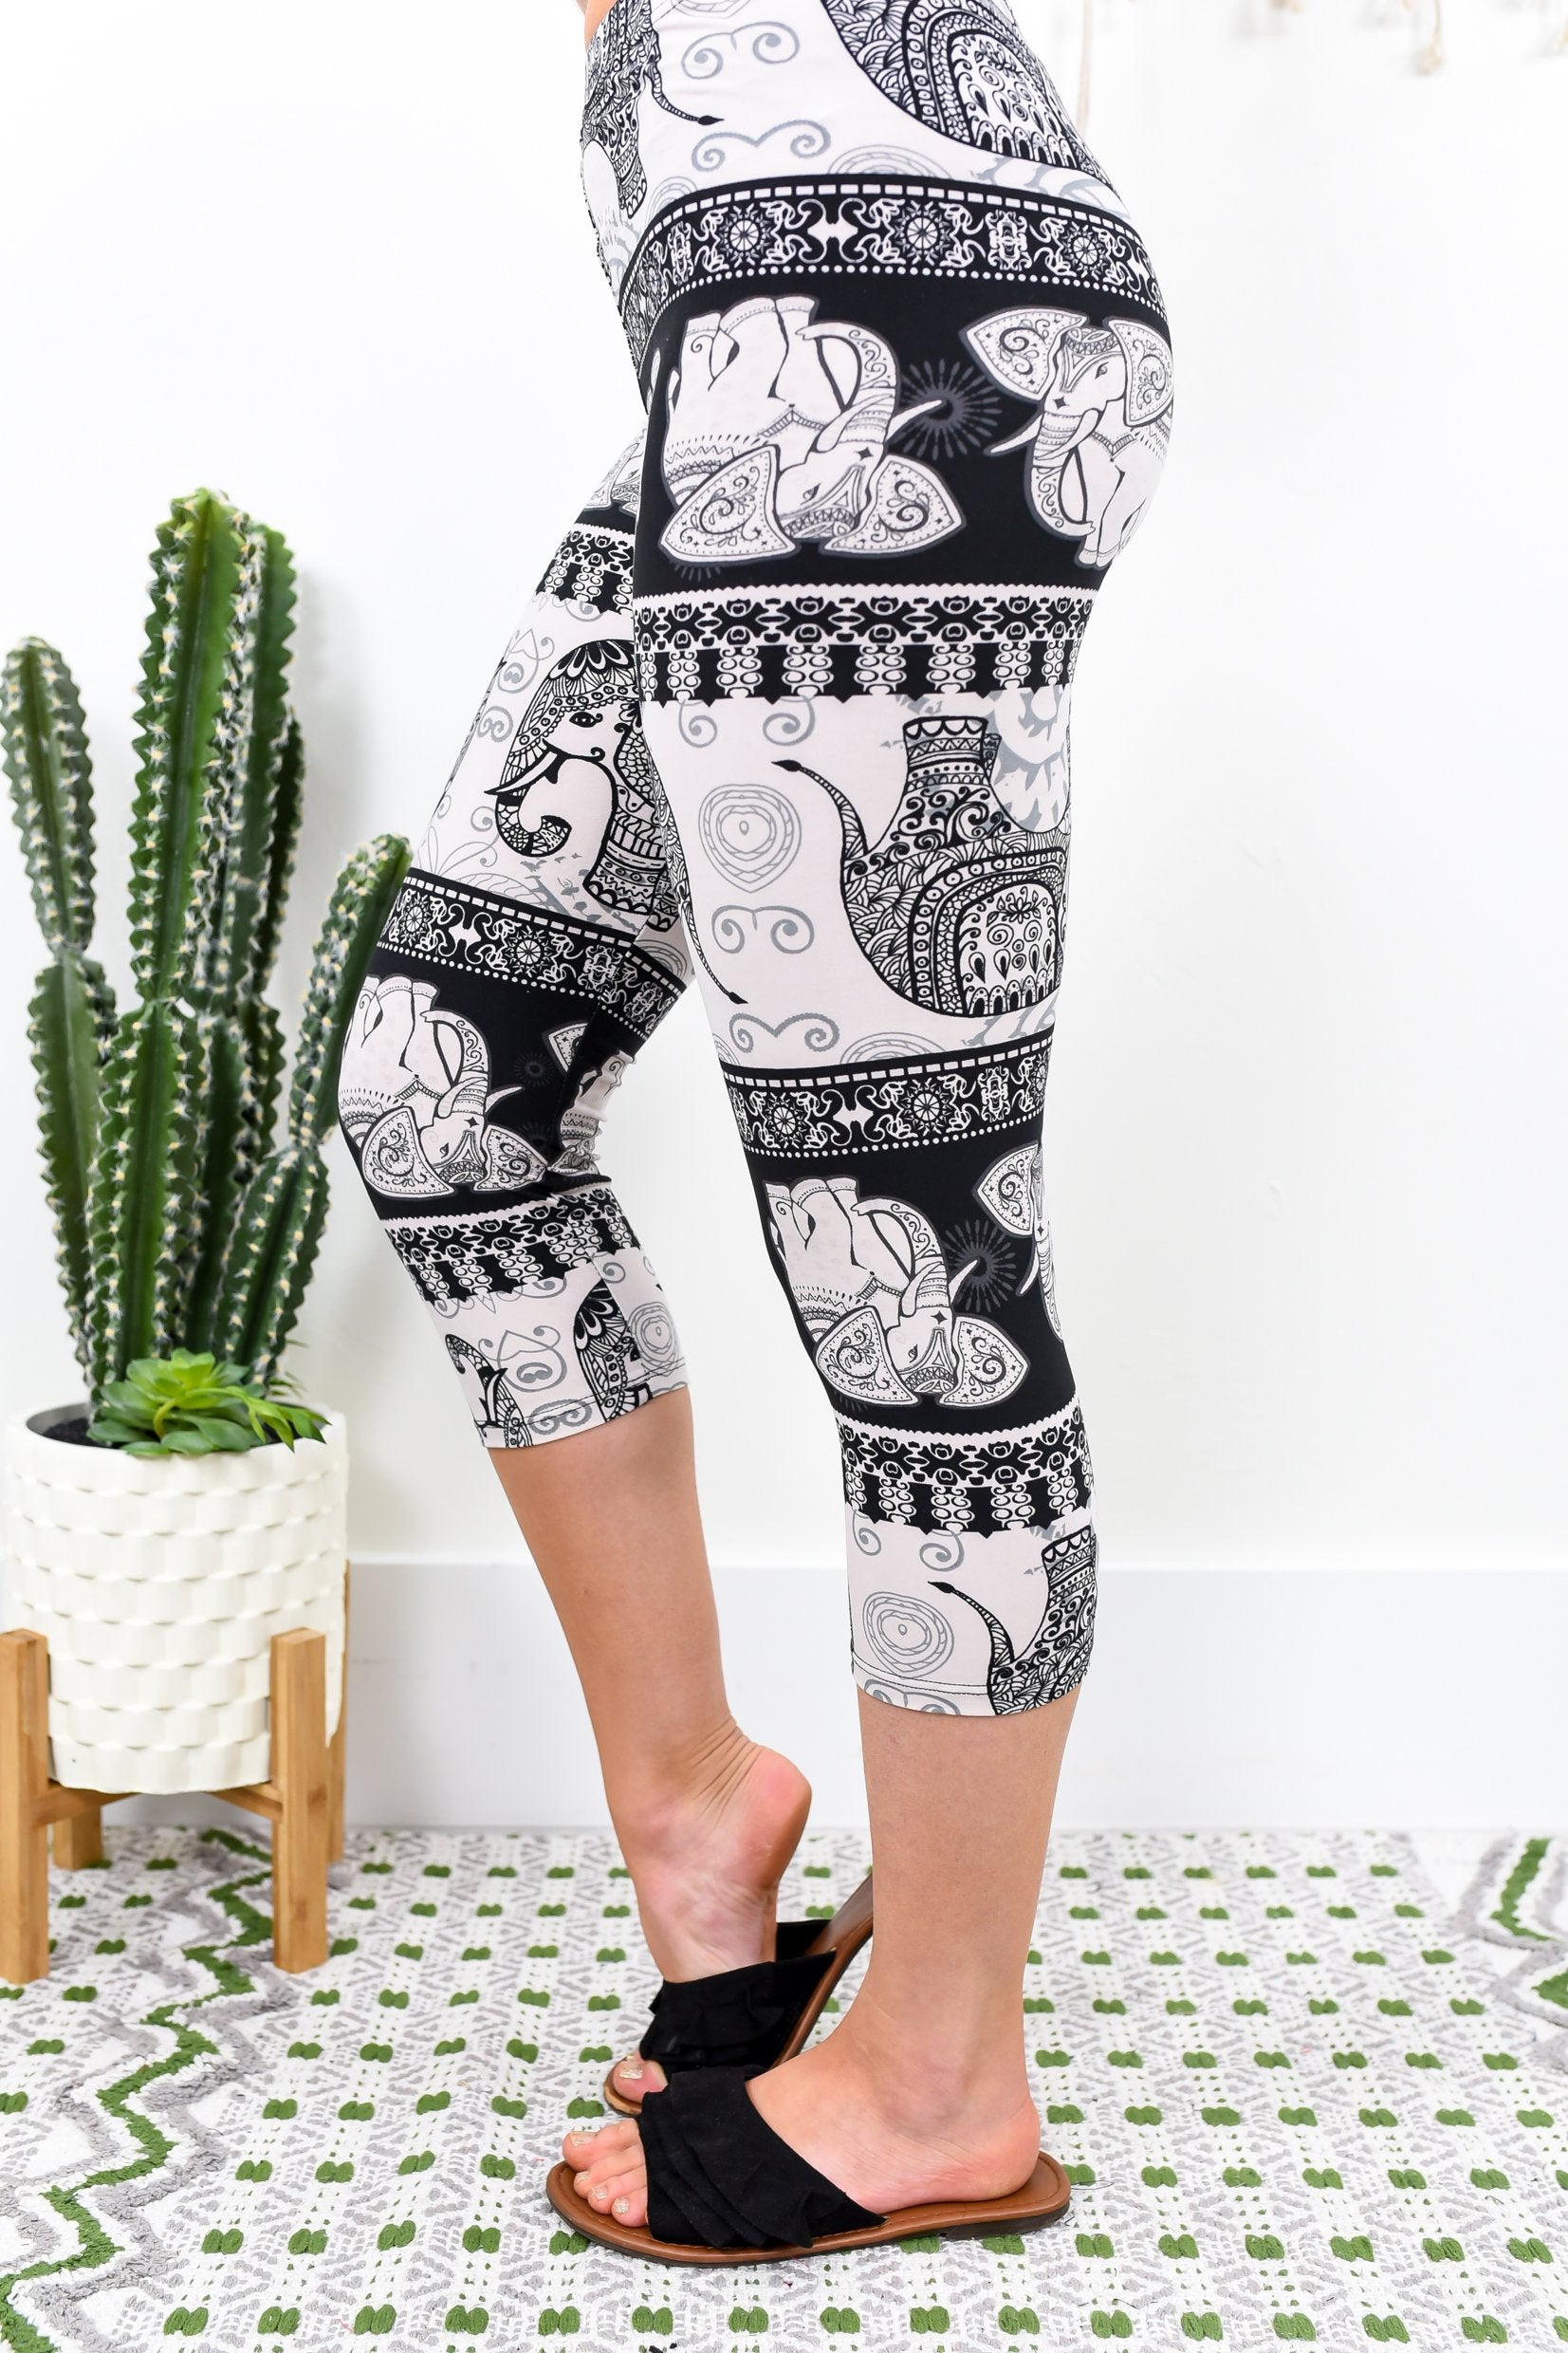 Black/Beige Elephant Capri Printed Leggings (Sizes 4-12) - LEG1805BK